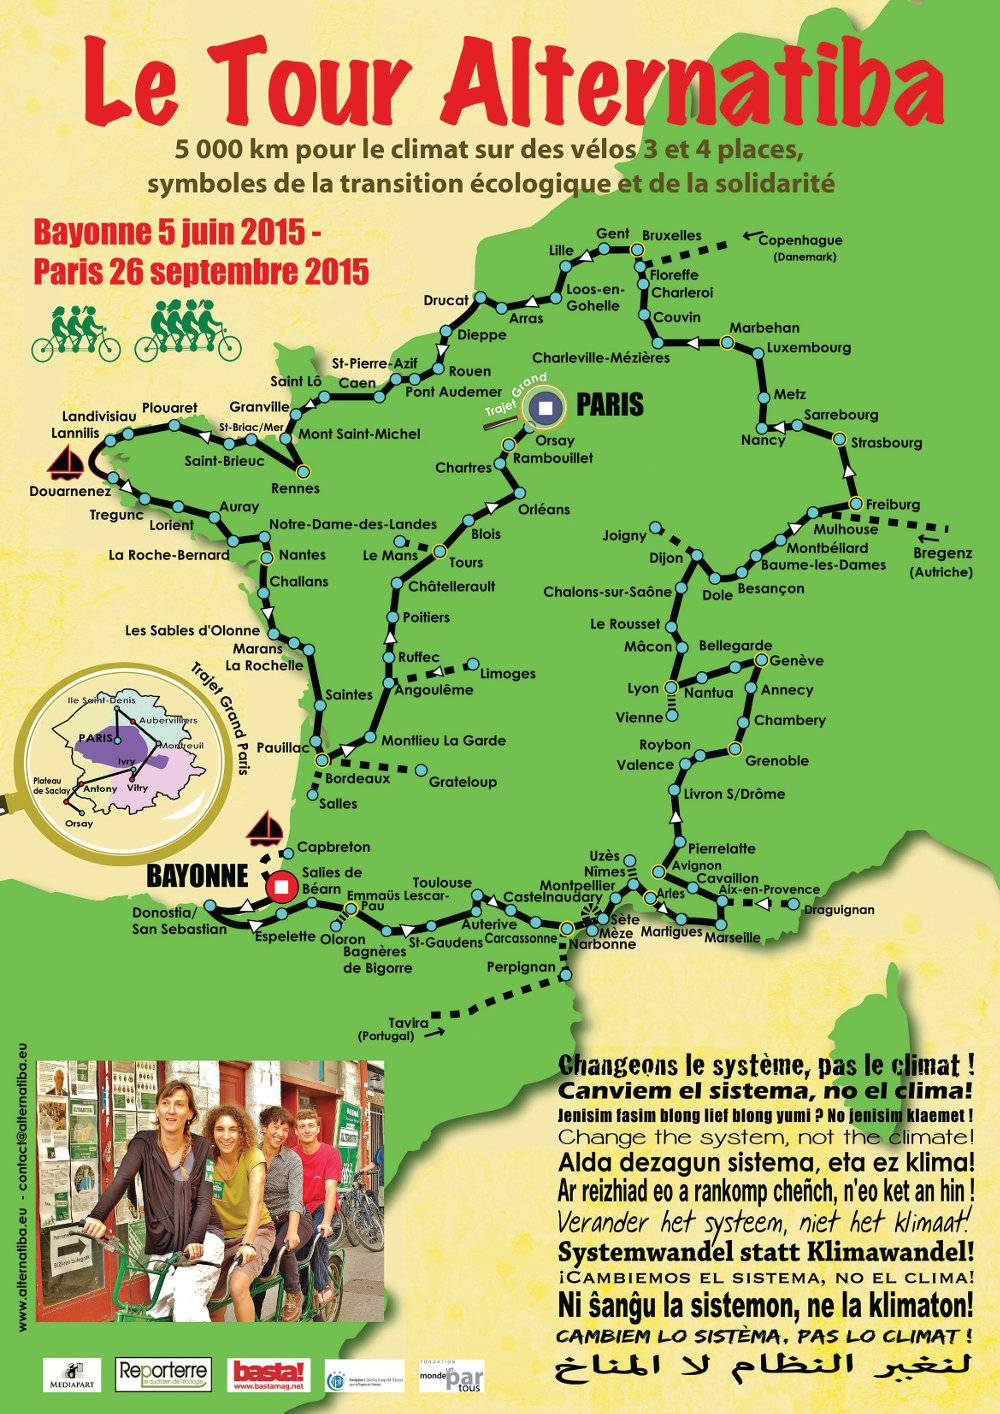 https://alternatiba.eu/wp-content/uploads/2014/11/Le-Tour-Alternatiba.jpg